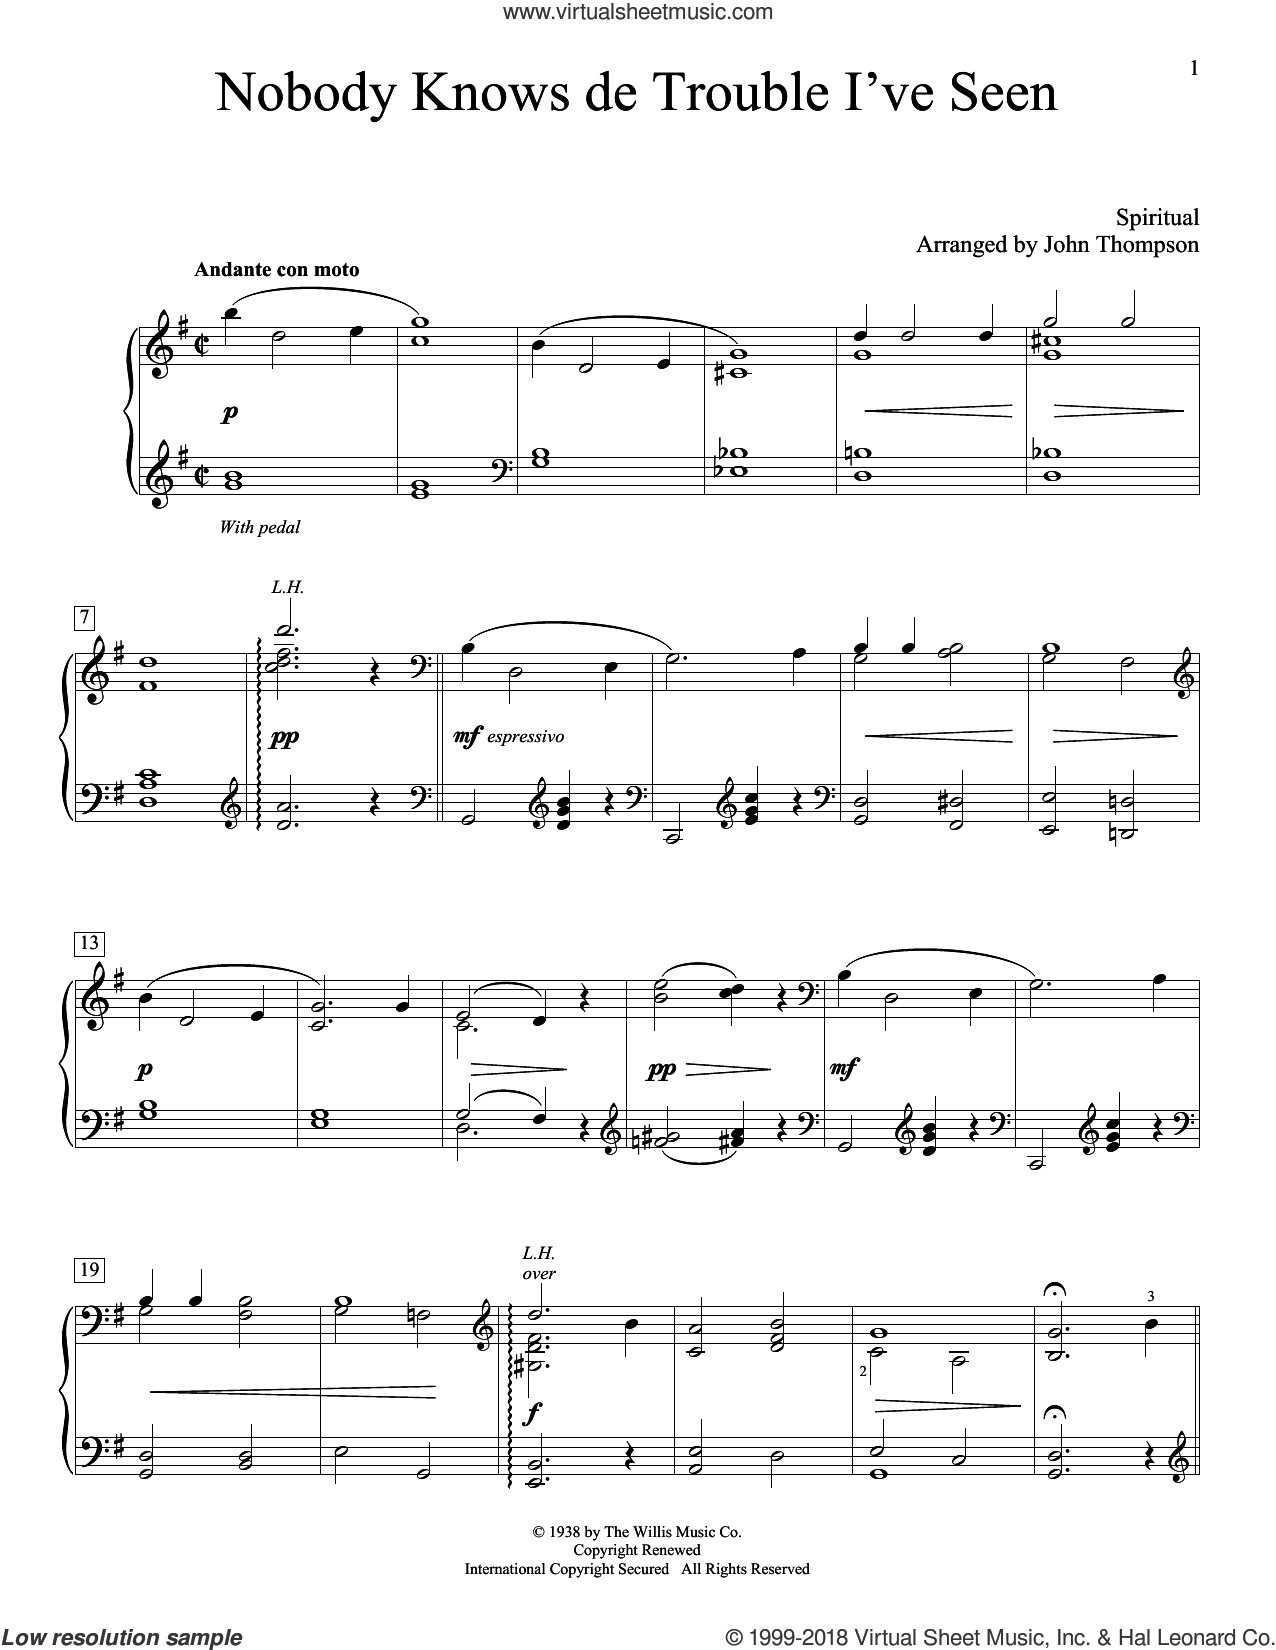 Nobody Knows De Trouble I've Seen sheet music for piano solo (elementary) by John Thompson. Score Image Preview.